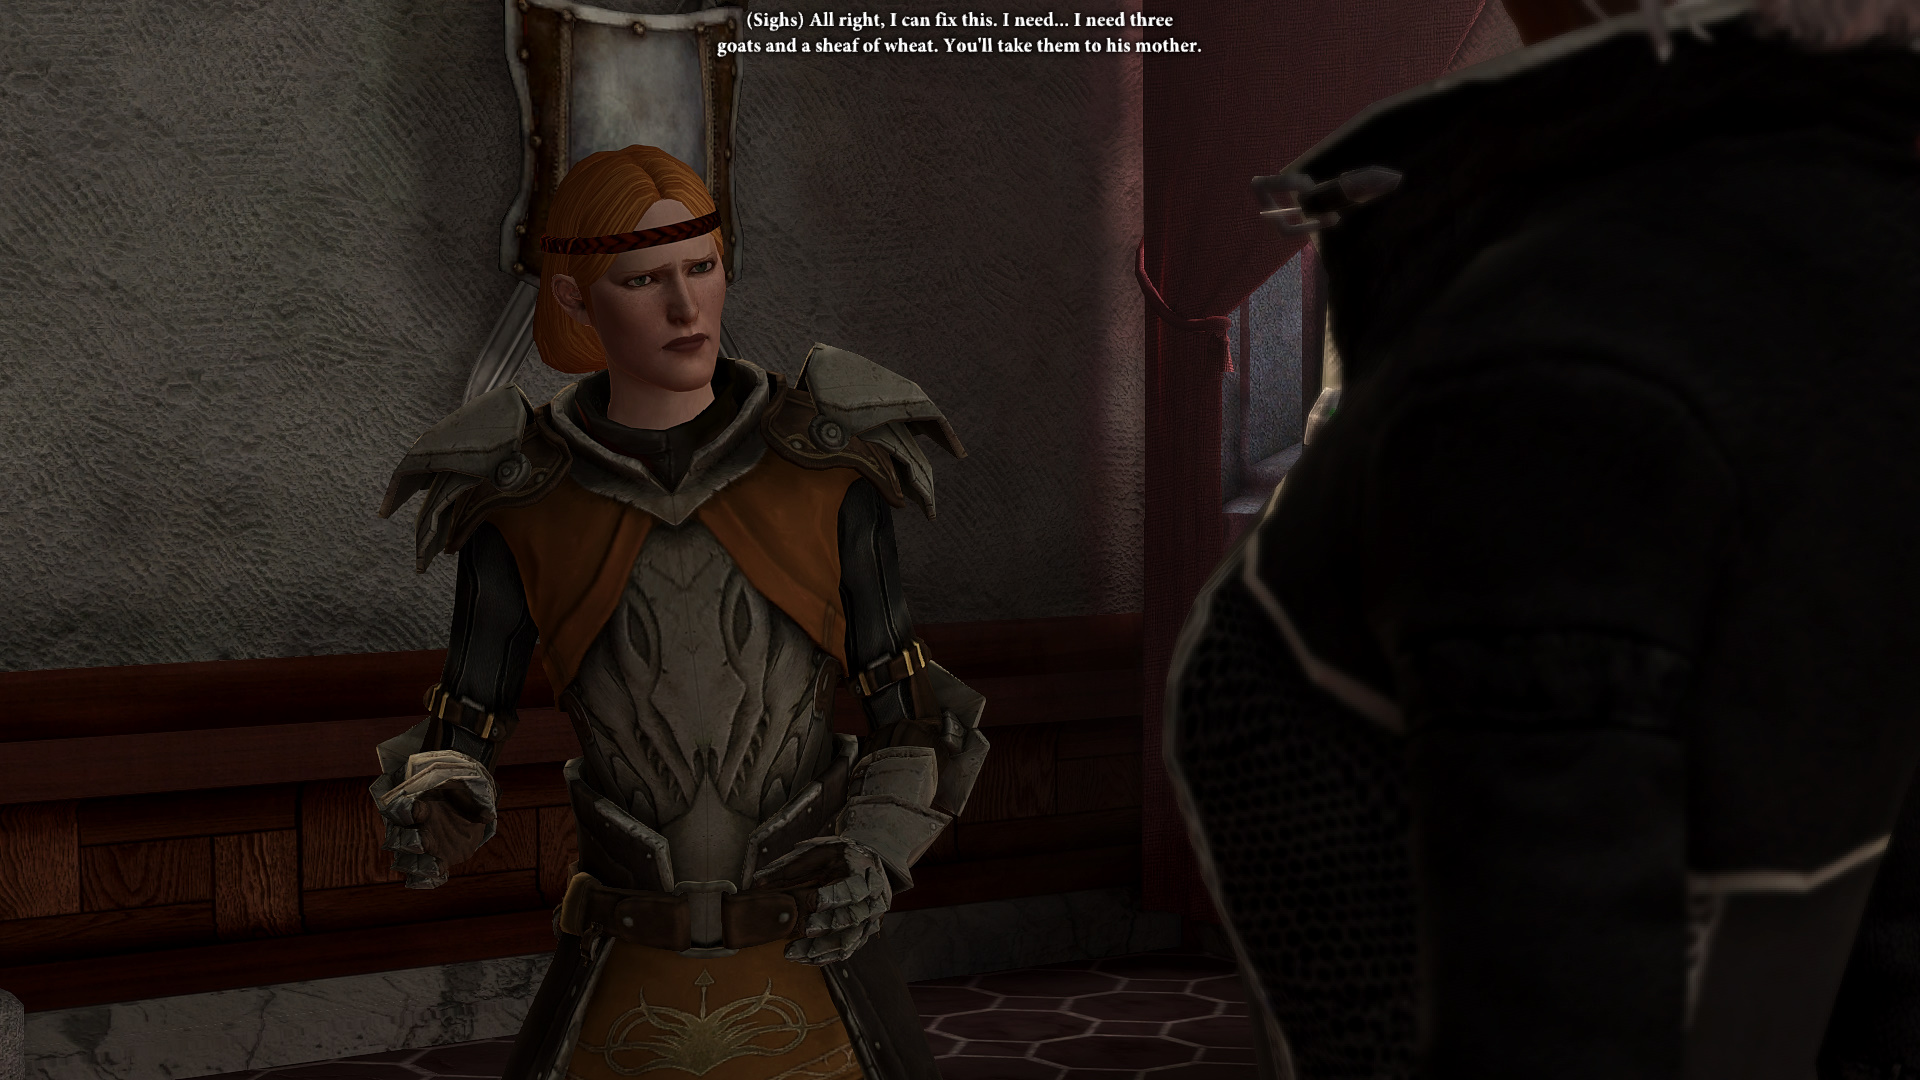 Aveline being not that great in the romance department